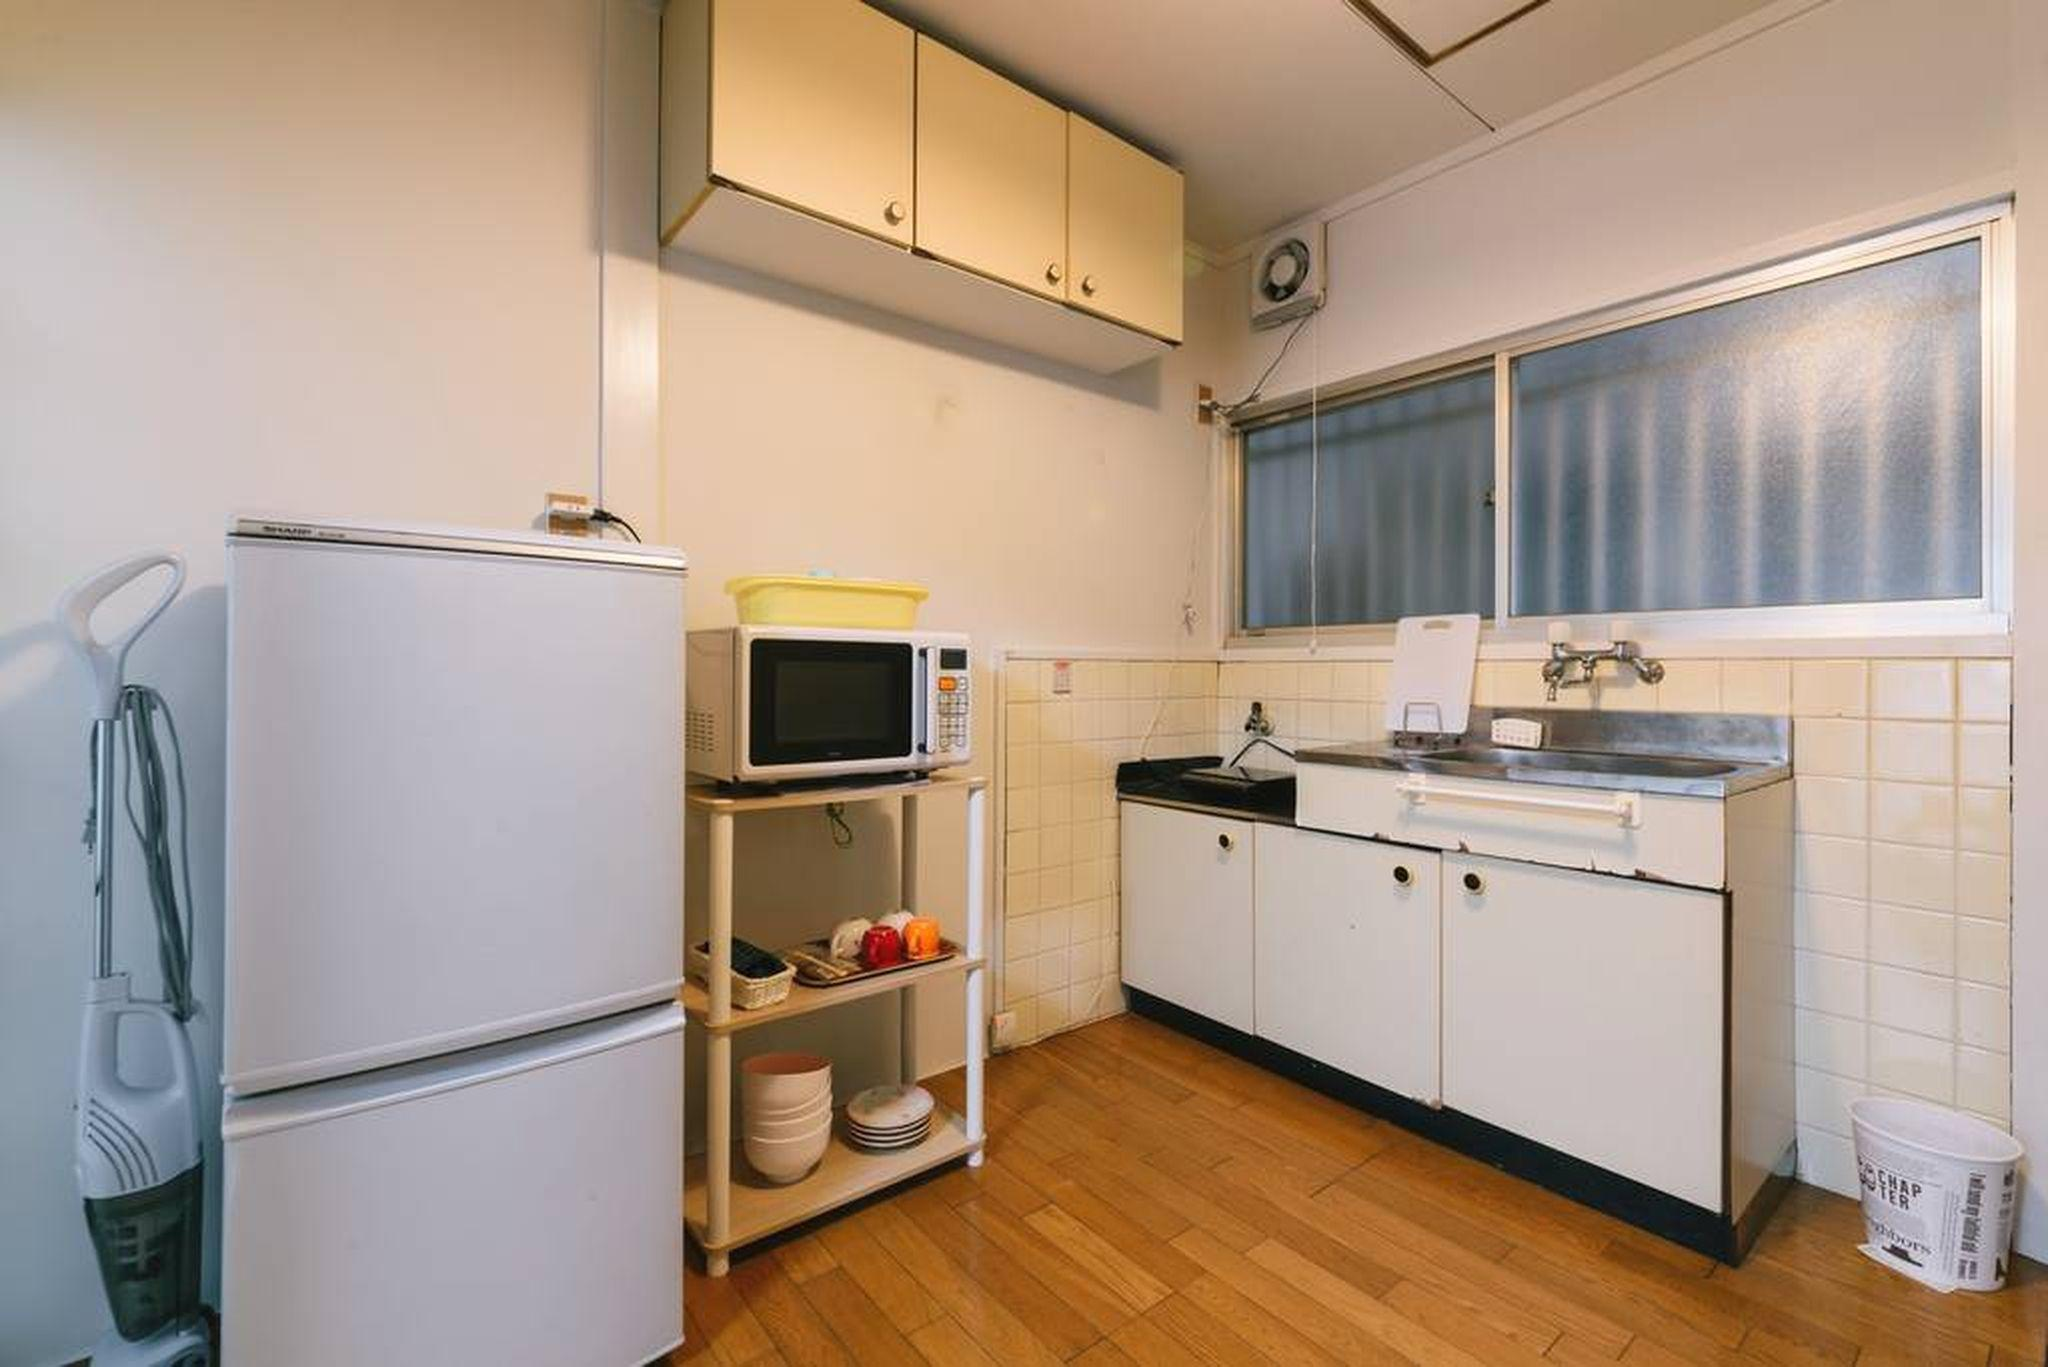 1 Bedroom With Kitchen And Bathroom 1103